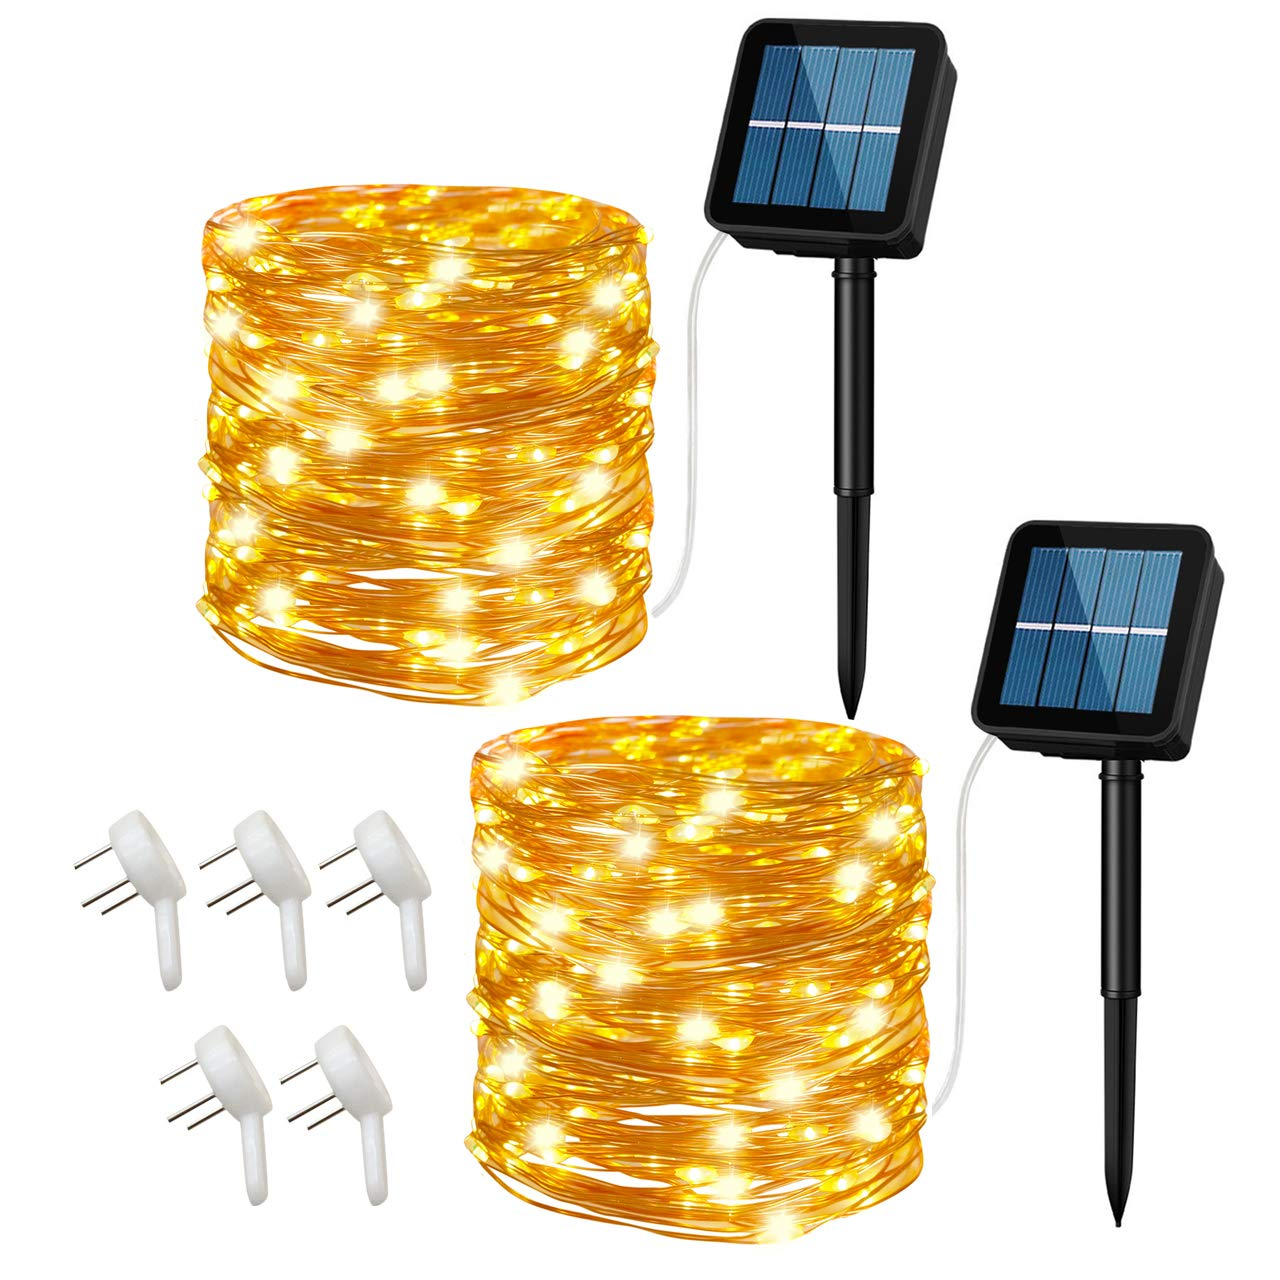 Cusomik Solar String Lights Outdoor,34ft 100 LED Copper Wire Lights,8 Modes Starry Lights, IP65 Waterproof Fairy Christmas Decorative Lights for patio,Garden,Gate,Yard,Wedding,Party 2 pack